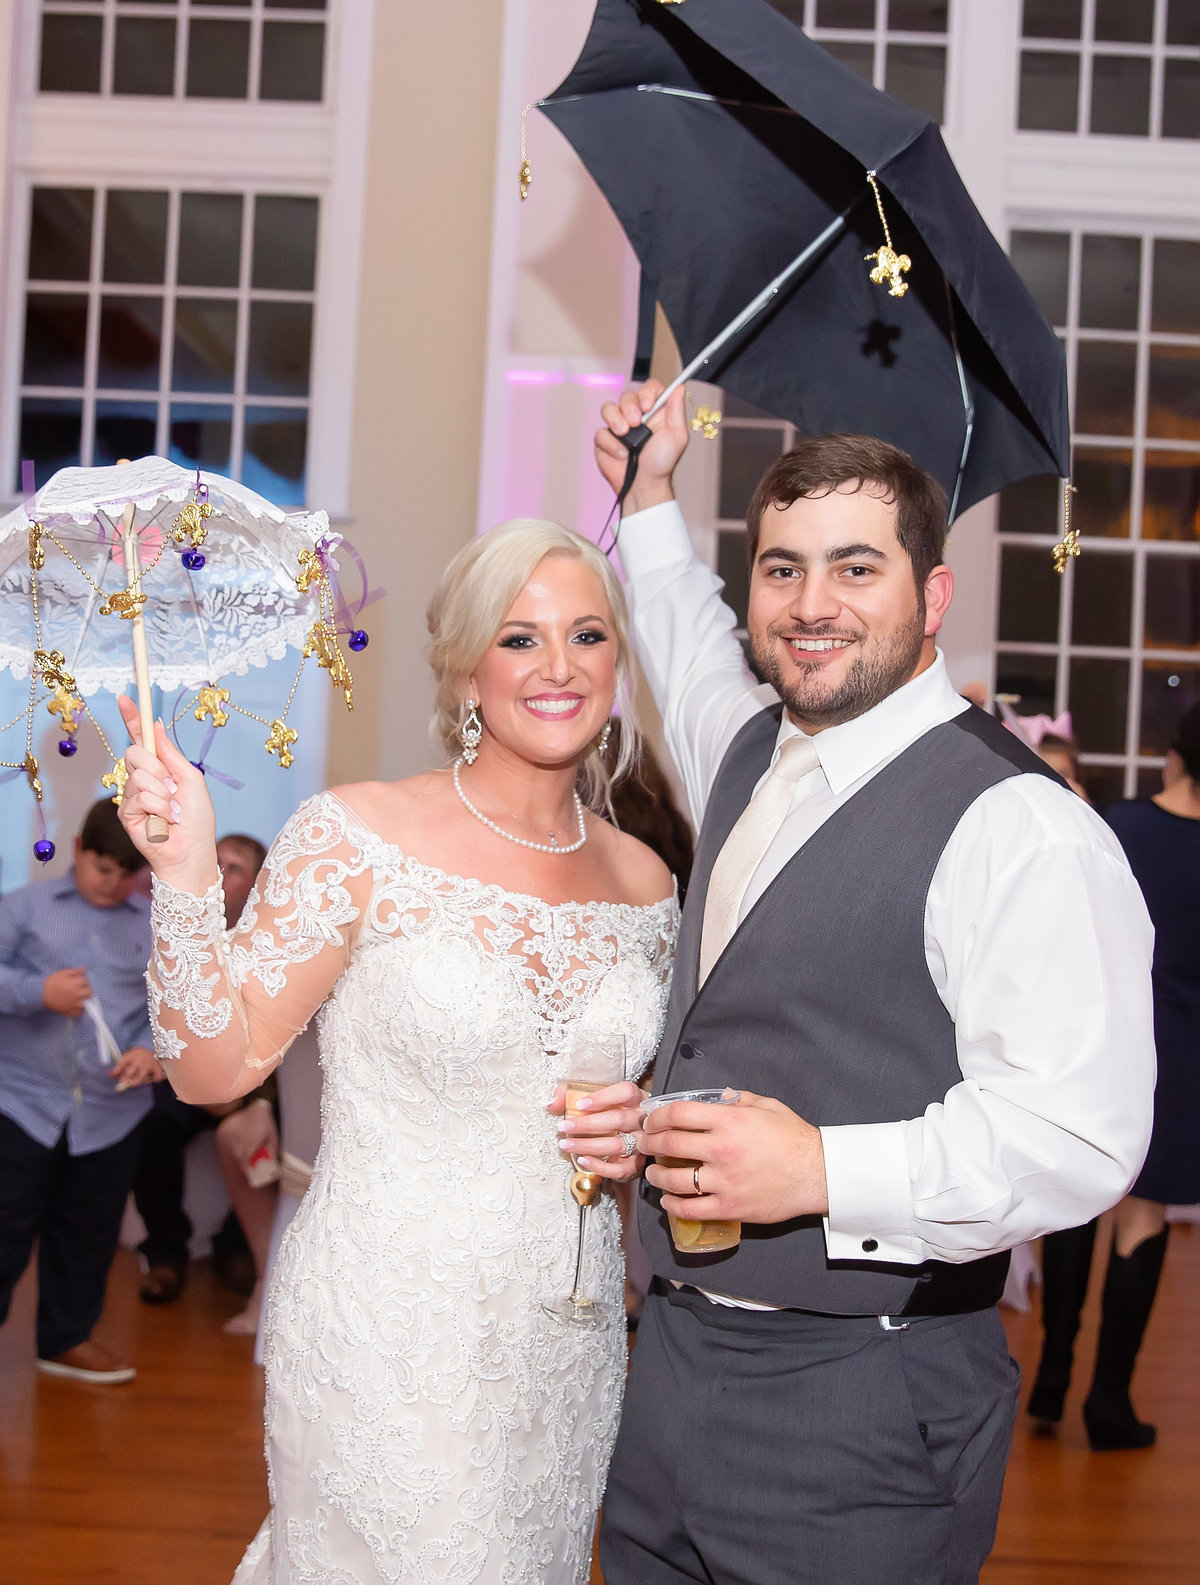 Kayce-Stork-Photography-Biloxi-Wedding-Photographers27